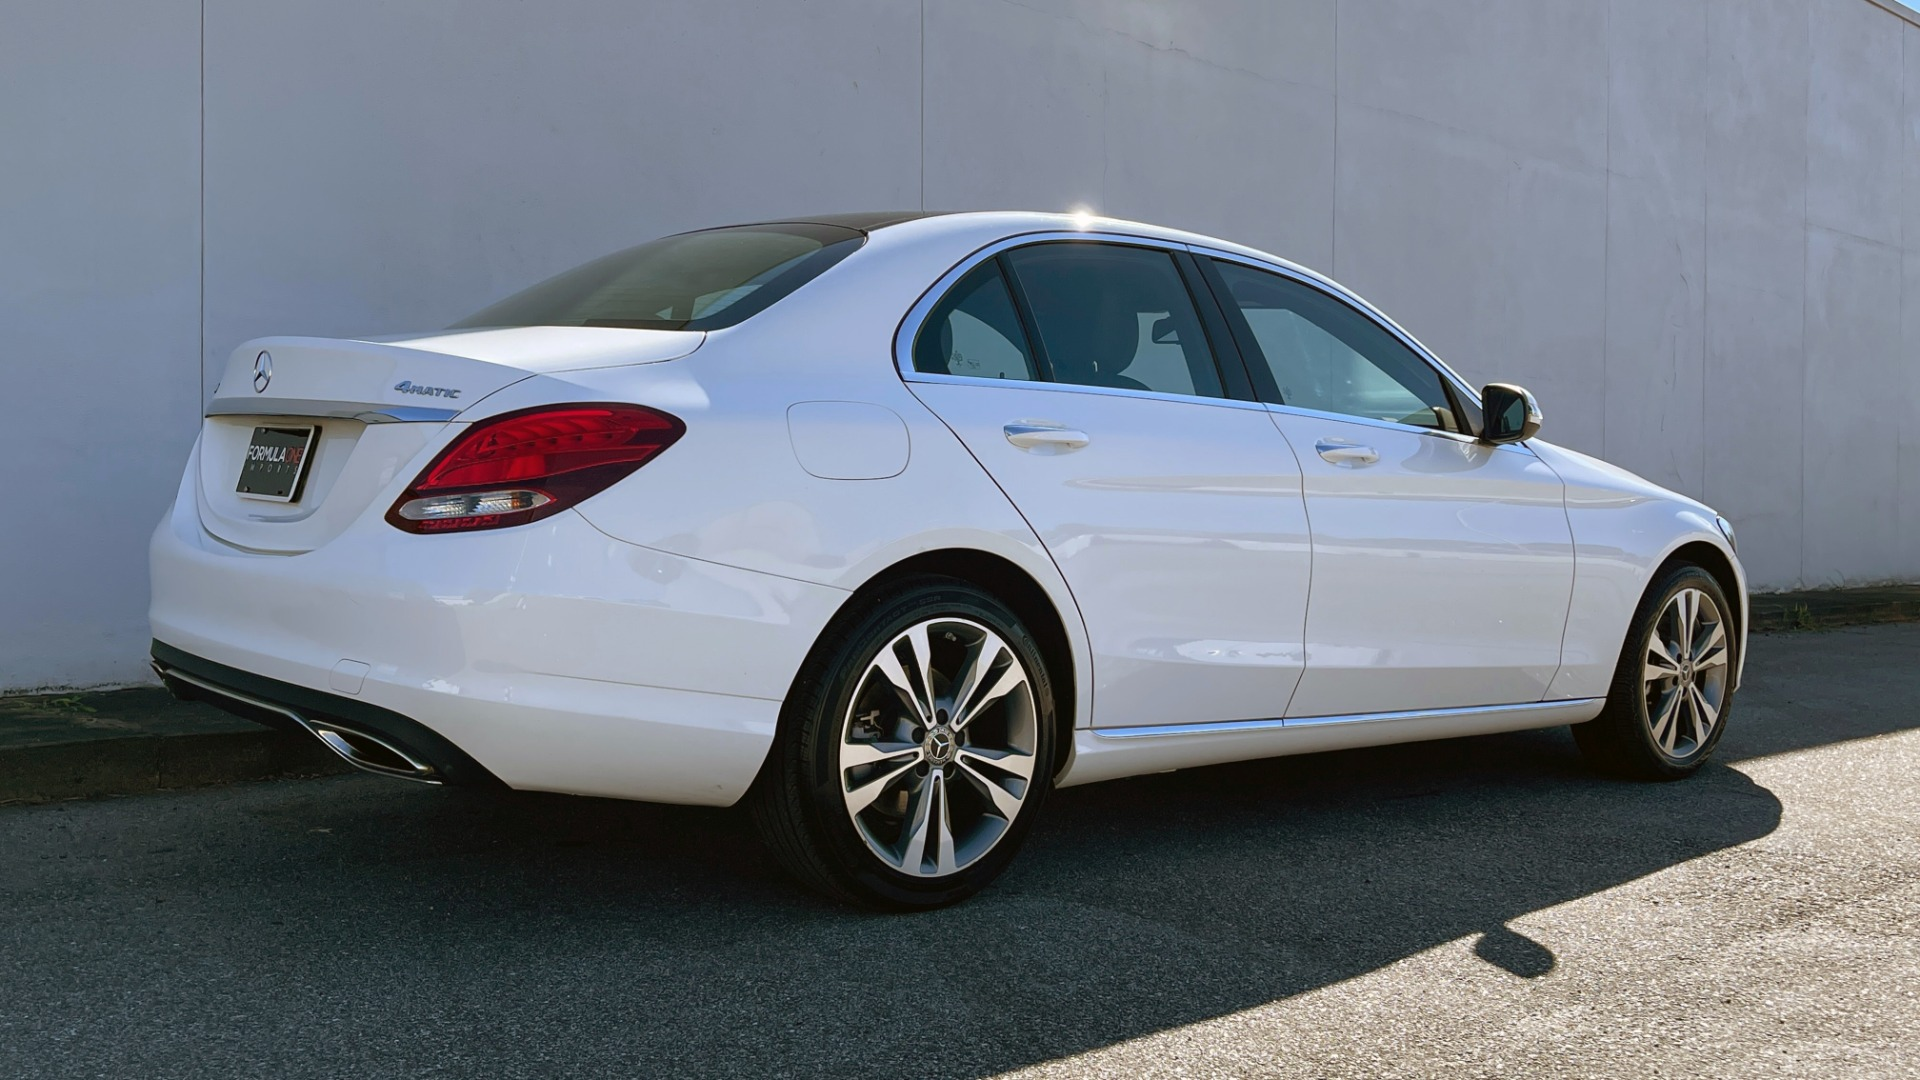 Used 2018 Mercedes-Benz C-CLASS C 300 4MATIC PREMIUM / SMARTPHONE INTEG / PANO-ROOF / REARVIEW for sale $30,995 at Formula Imports in Charlotte NC 28227 5